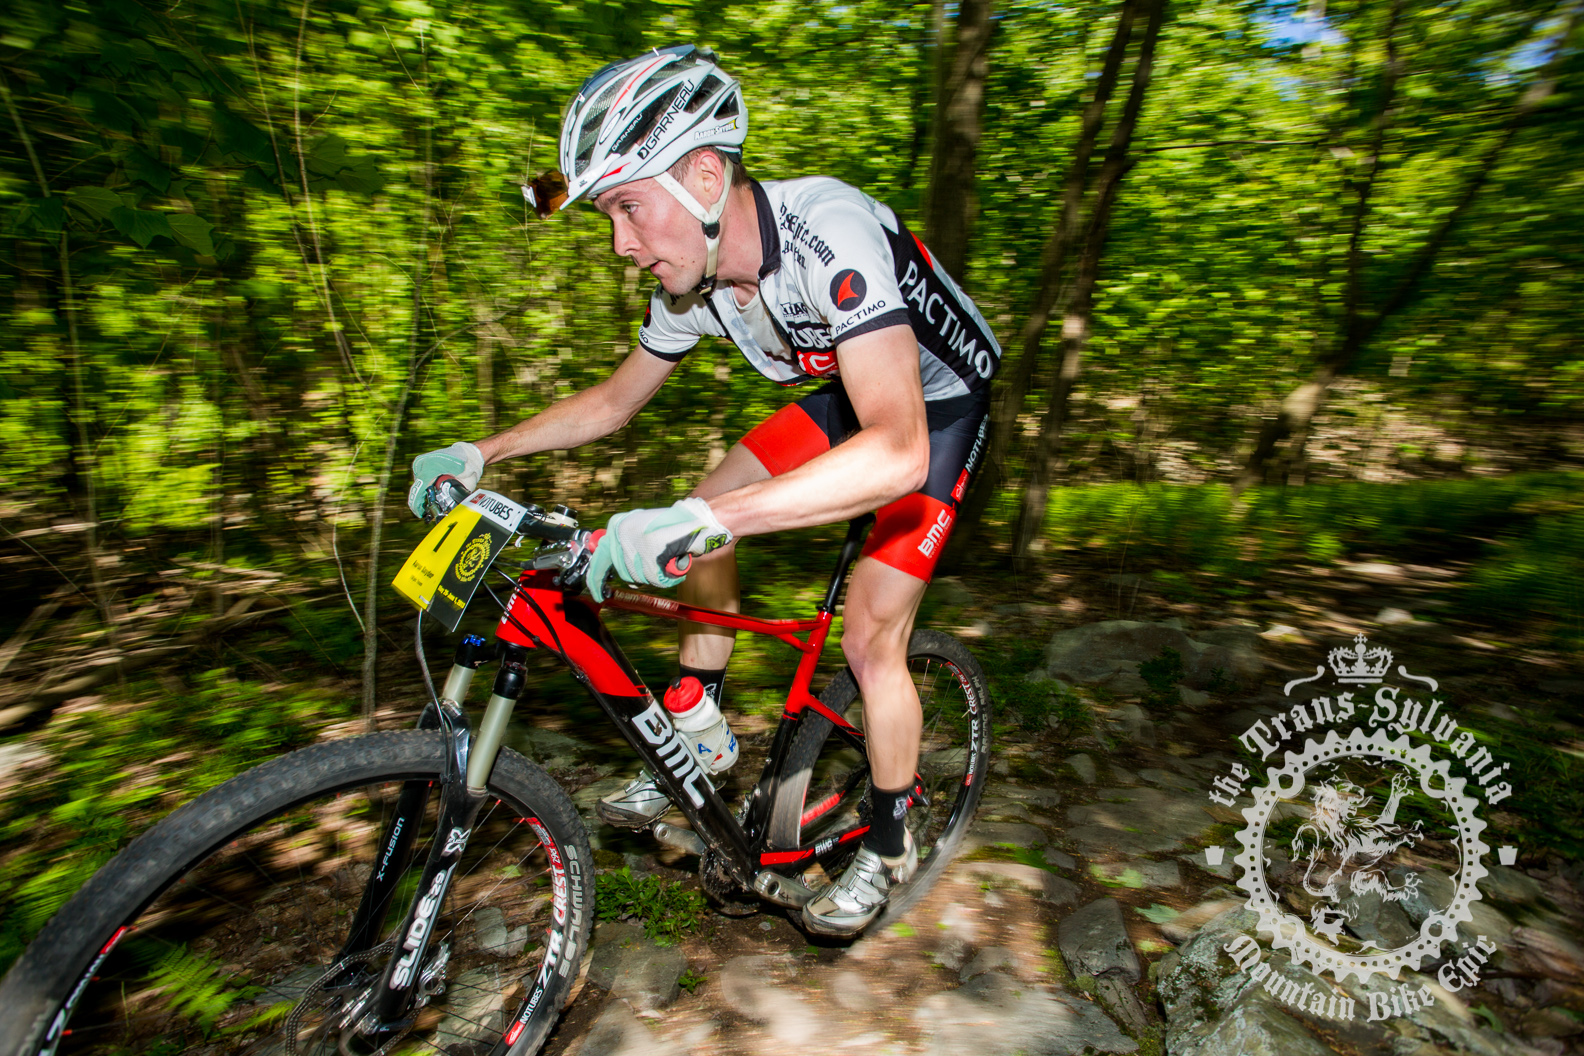 Aaron Snyder rolling through the Enduro section of the Prologue